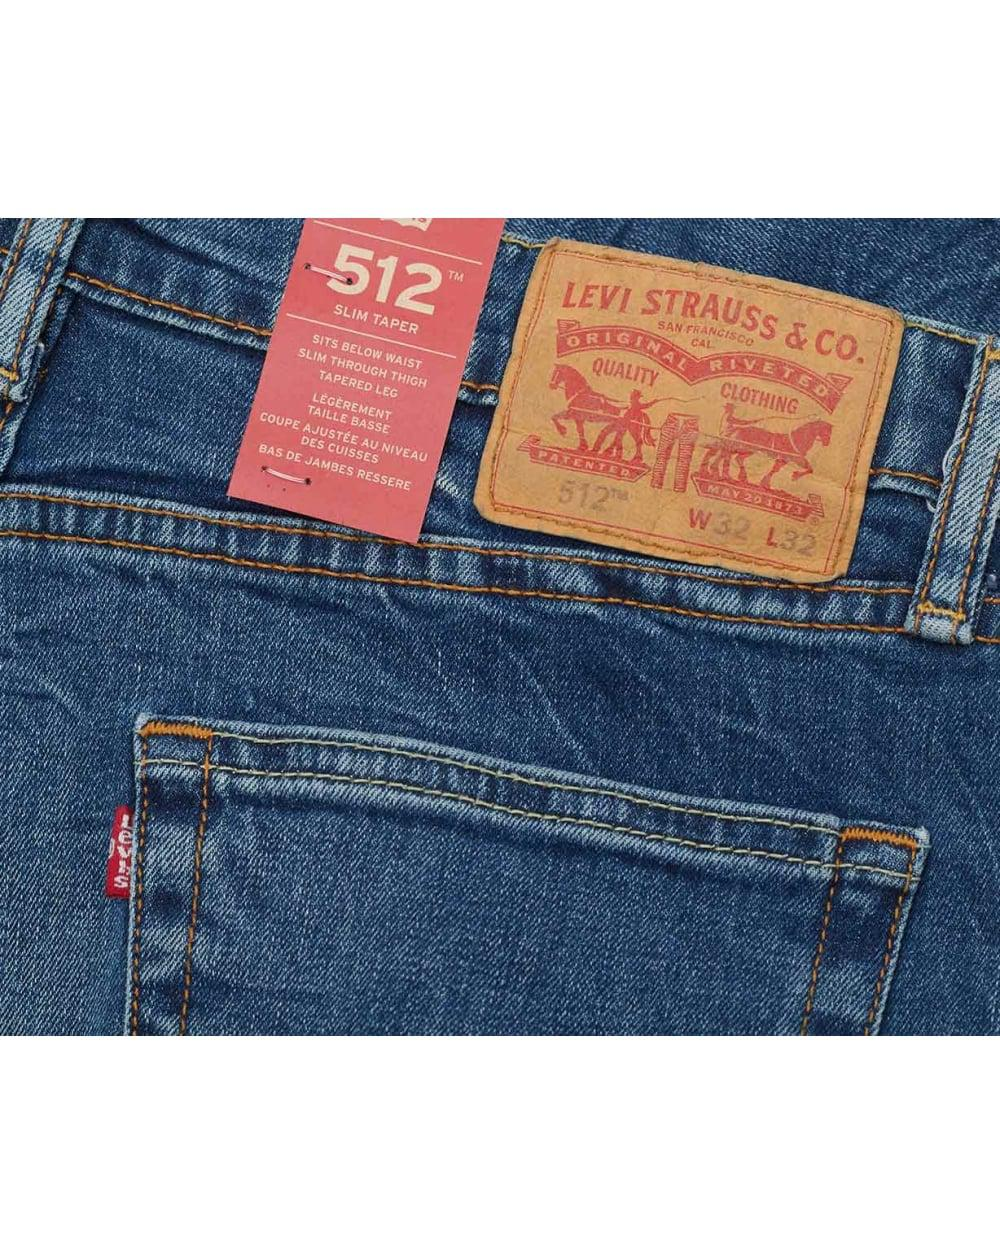 Fit Lyst Jeans Slim 512 For In Taper Blue Levi's Men awZqtW